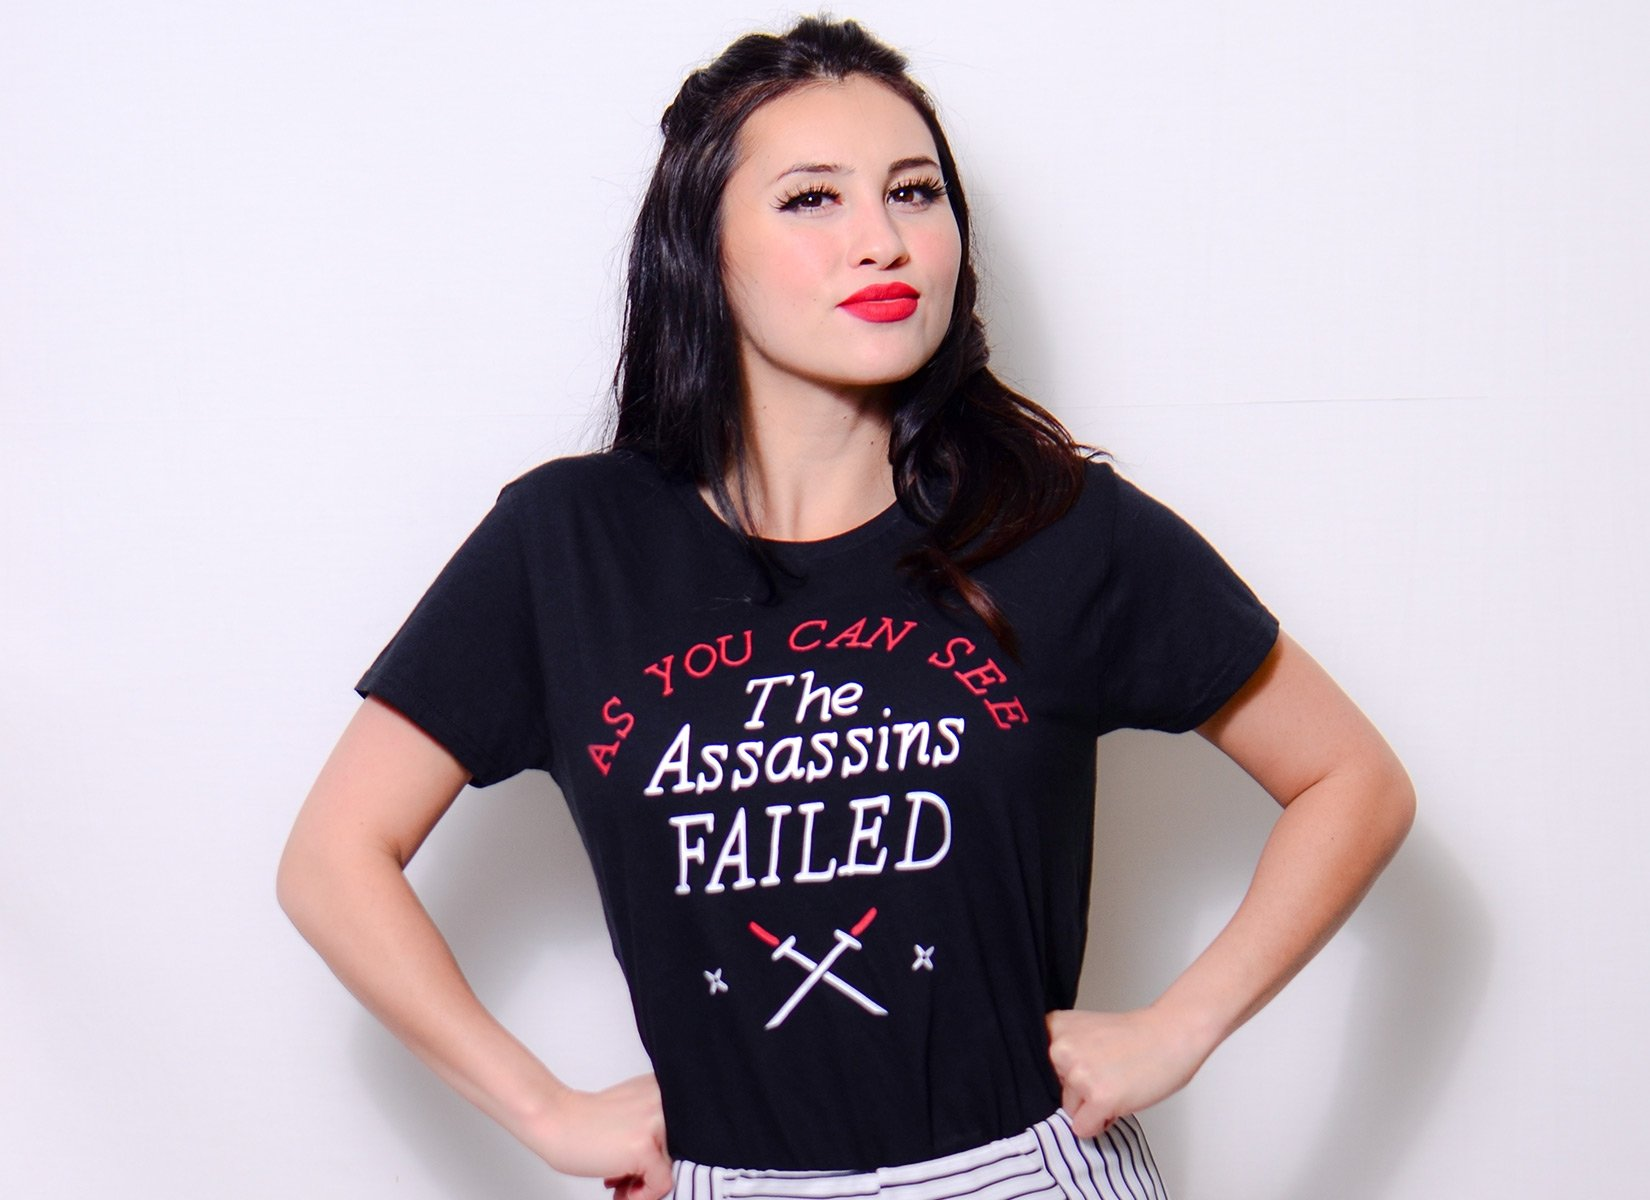 The Assassins Failed on Womens T-Shirt